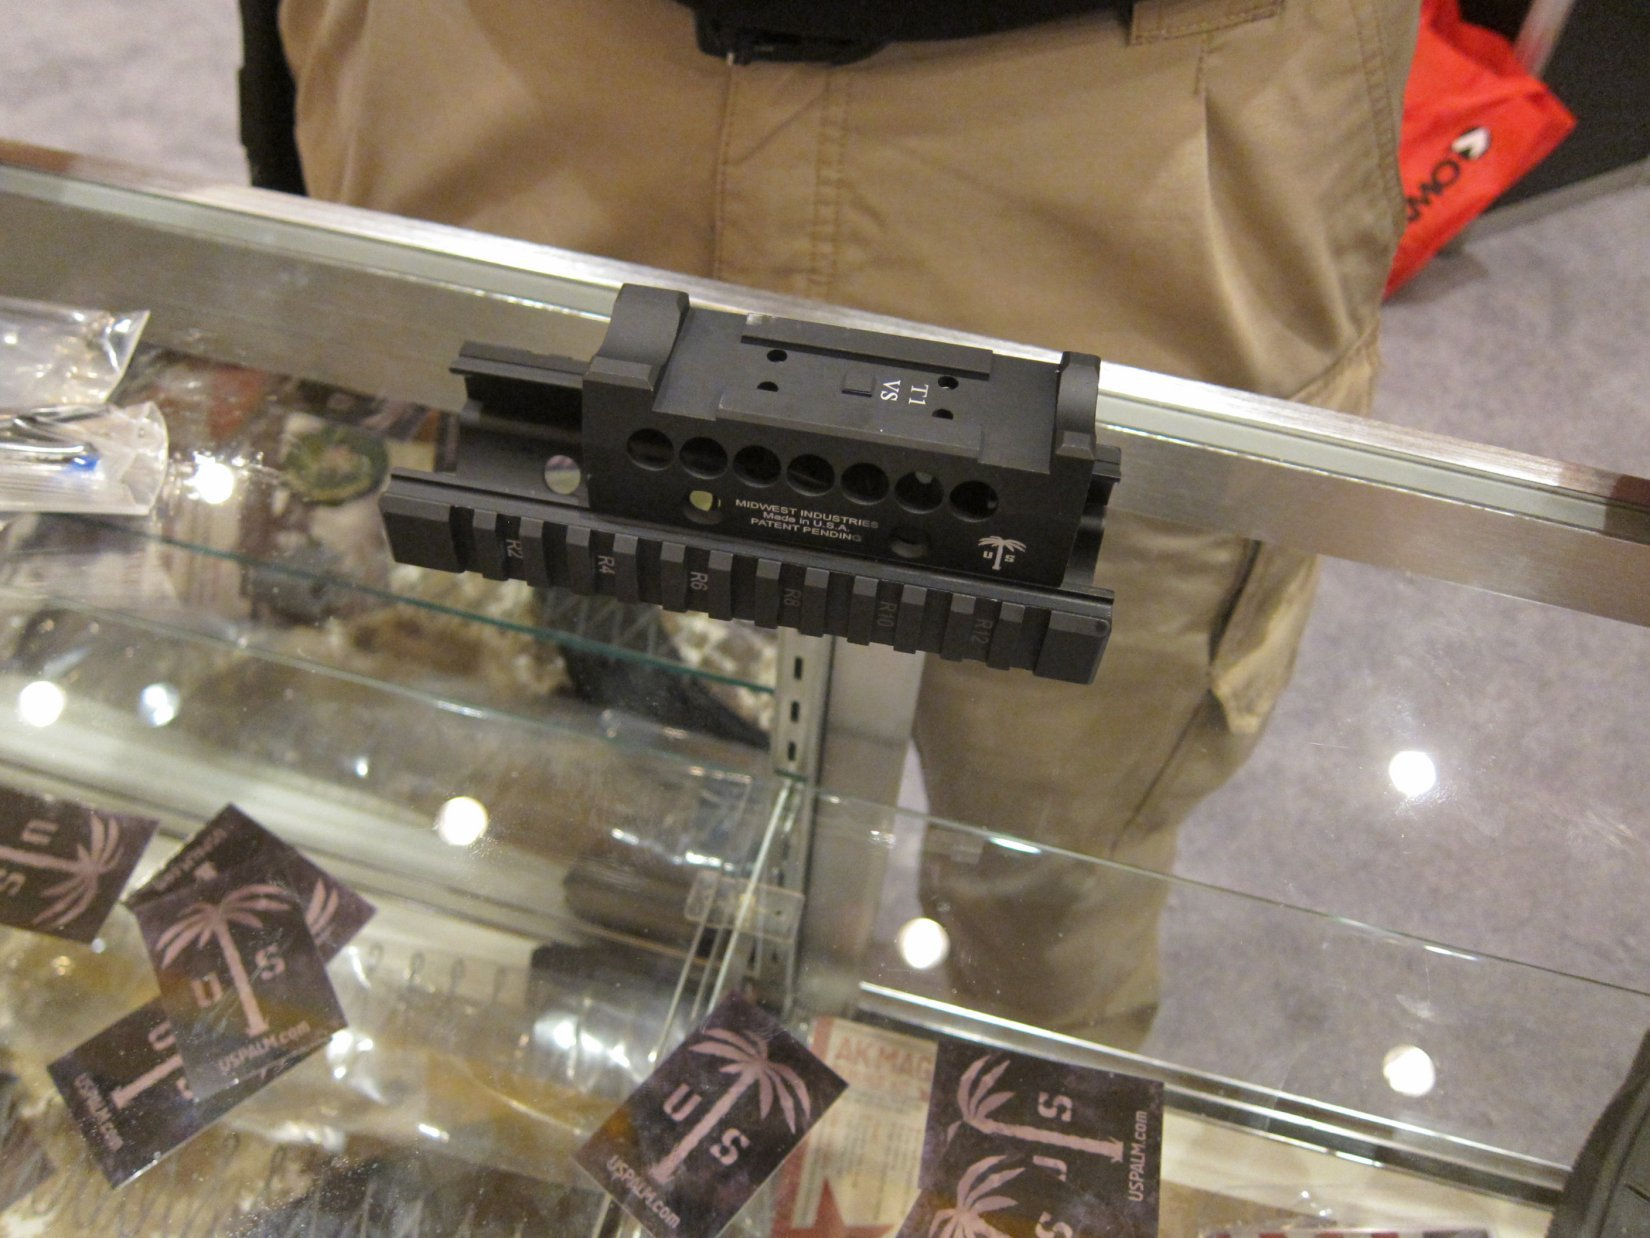 US PALM  Midwest Industries MI Rail Kit for AK Rifle AK 47 AKM Rifle Carbine TangoDown SHOT Show 2012 DefenseReview.com DR 1 US PALM Takedown/Breakdown AK (Kalashnikov AK 47/AKM Rifle/Carbine) with US PALM/Midwest Industries MI Rail Kit at SHOT Show 2012: Tactical, Practical and Backpackable AK for Military Special Operations and Civilian Tactical Shooters! (Video!)